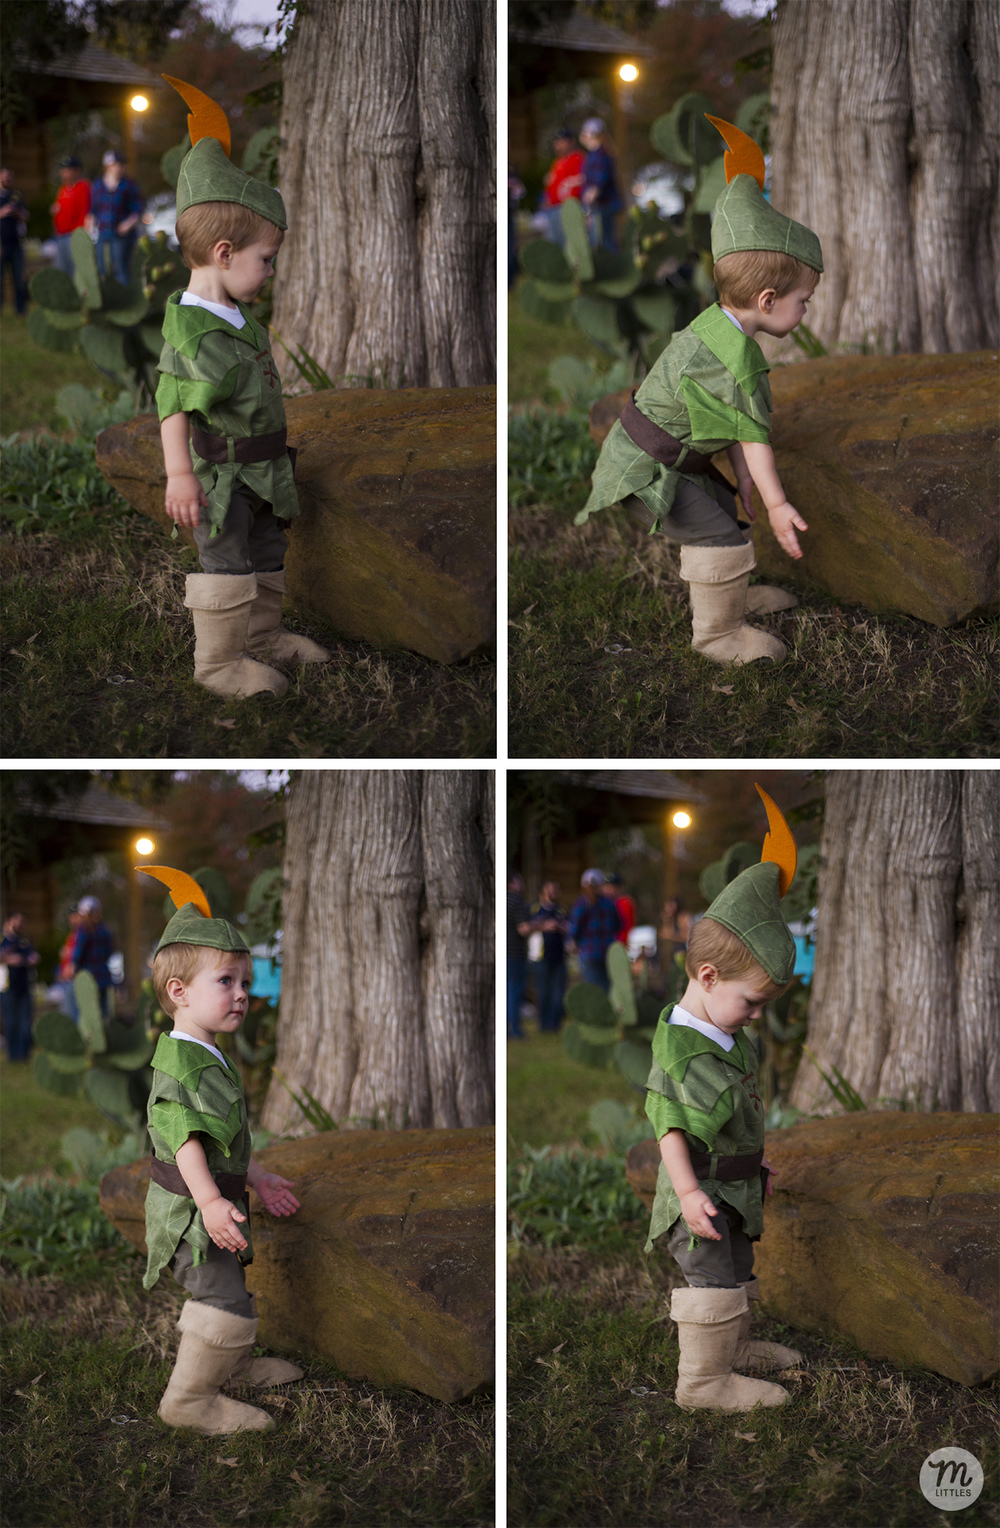 Miles was really disappointed to learn that the costume would not allow him to pick up heavy rocks.